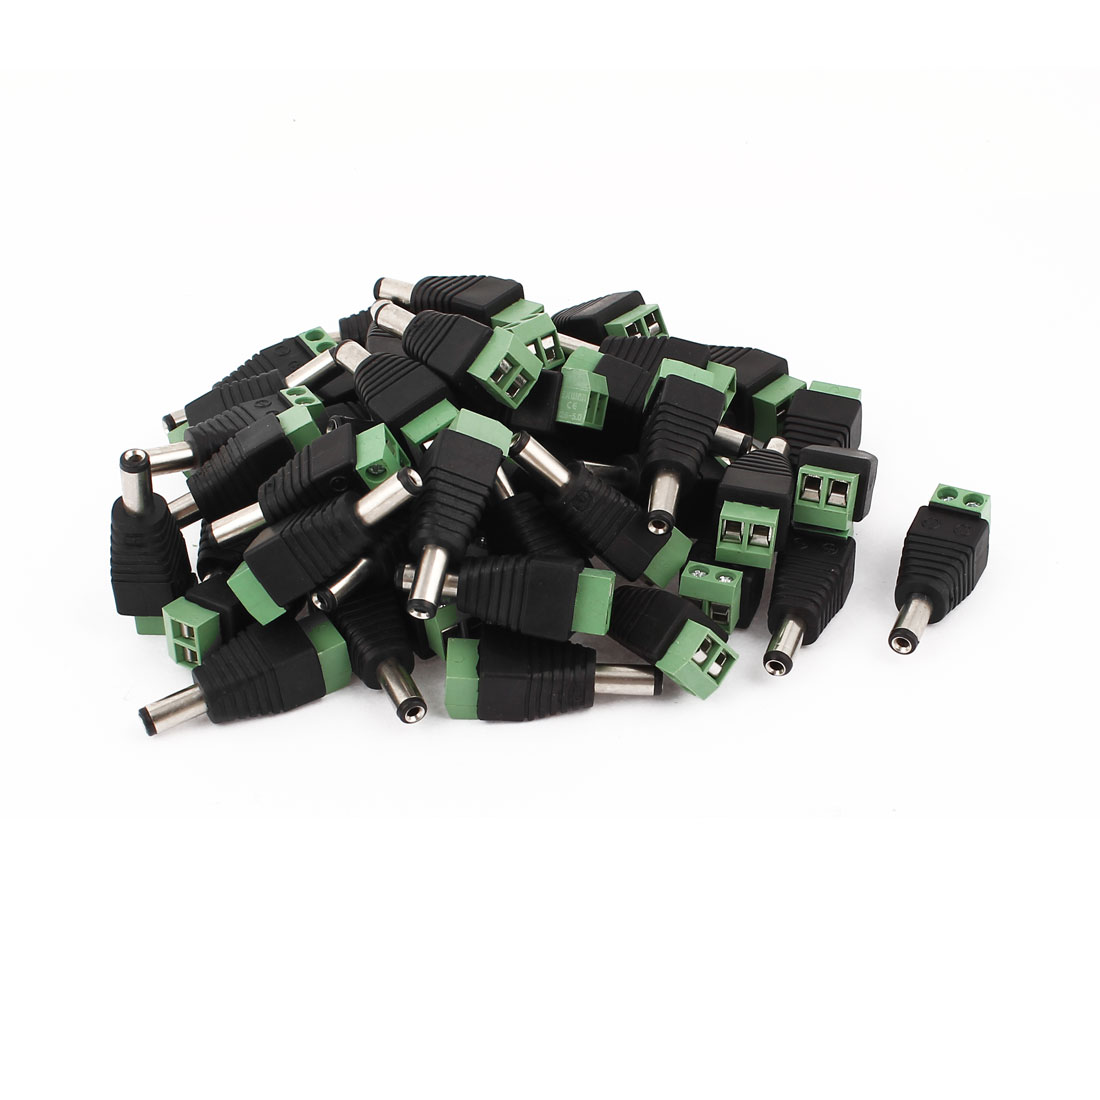 50 Pcs 5.5x2.1mm DC Power Male Screw Terminal Adapter Connector for CCTV Camera